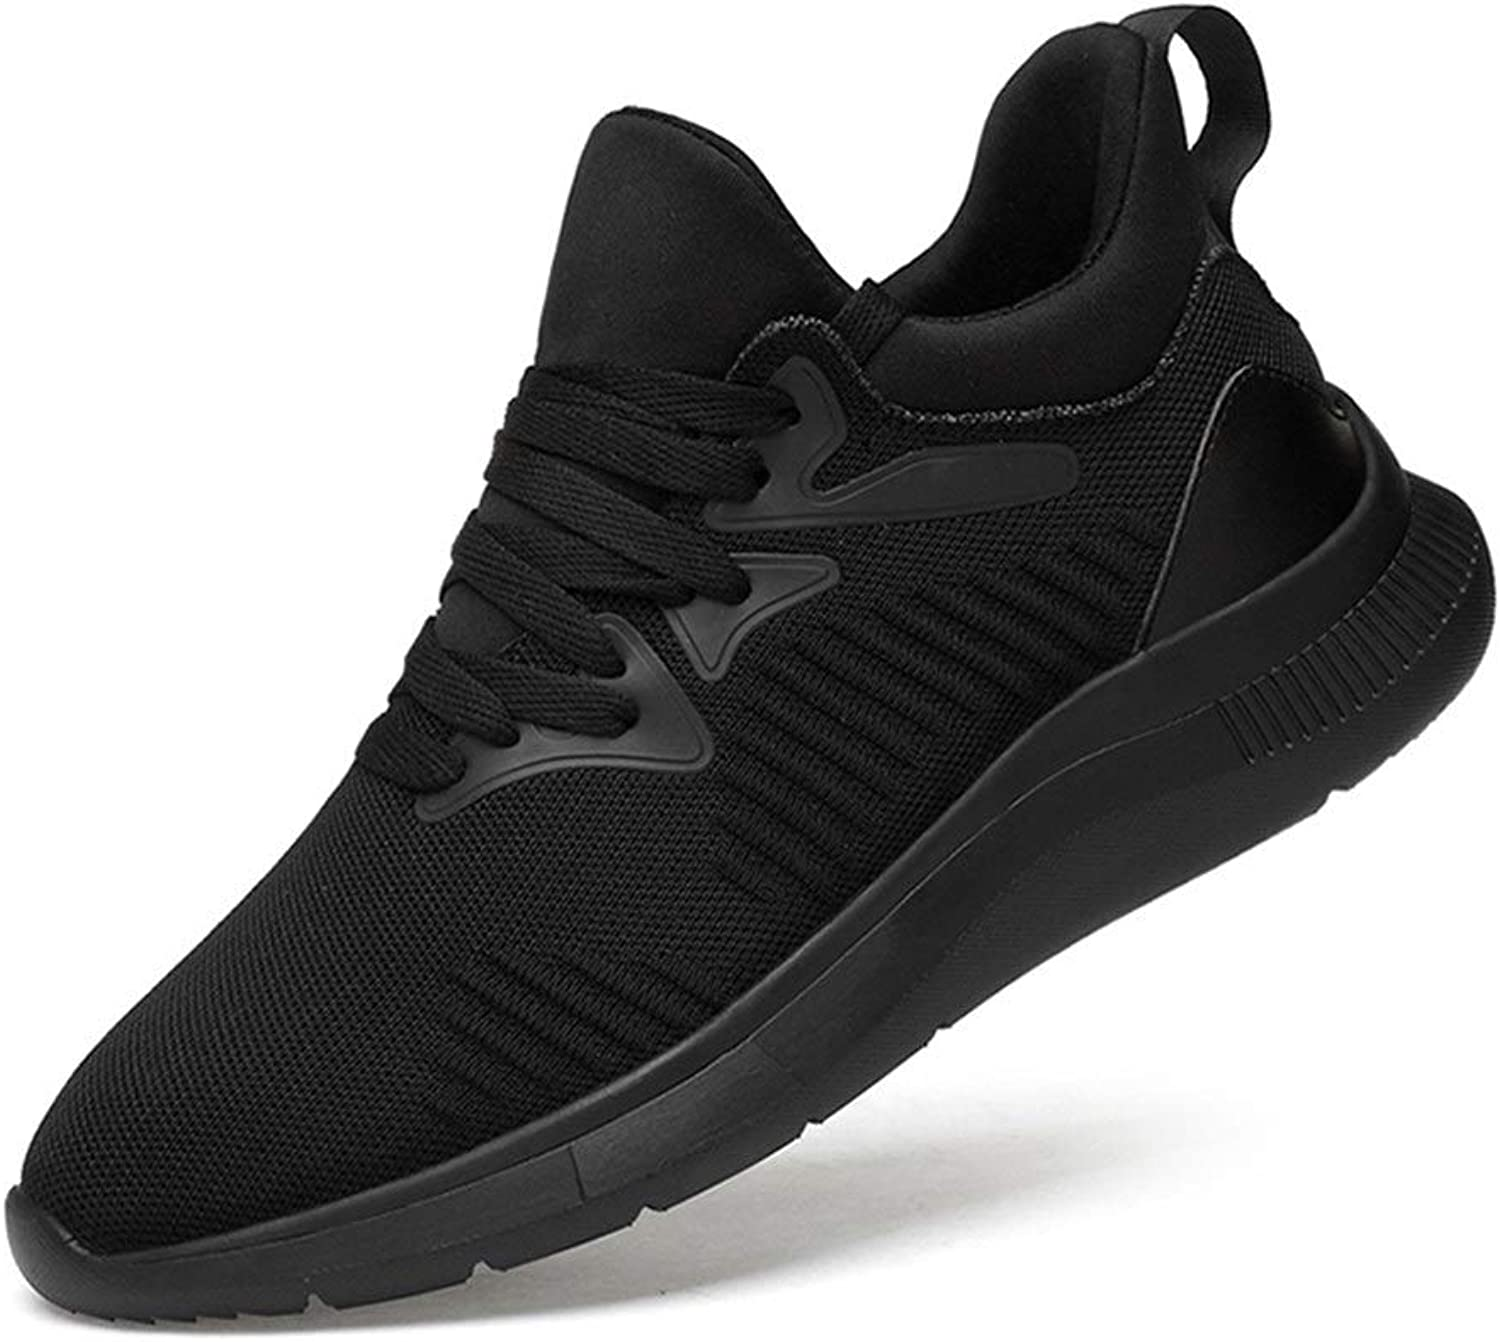 Ino Athletic shoes for Men Sports shoes Lace Up Style Knittimg Mesh+OX Leather Corporeal Breathable Stave Toe